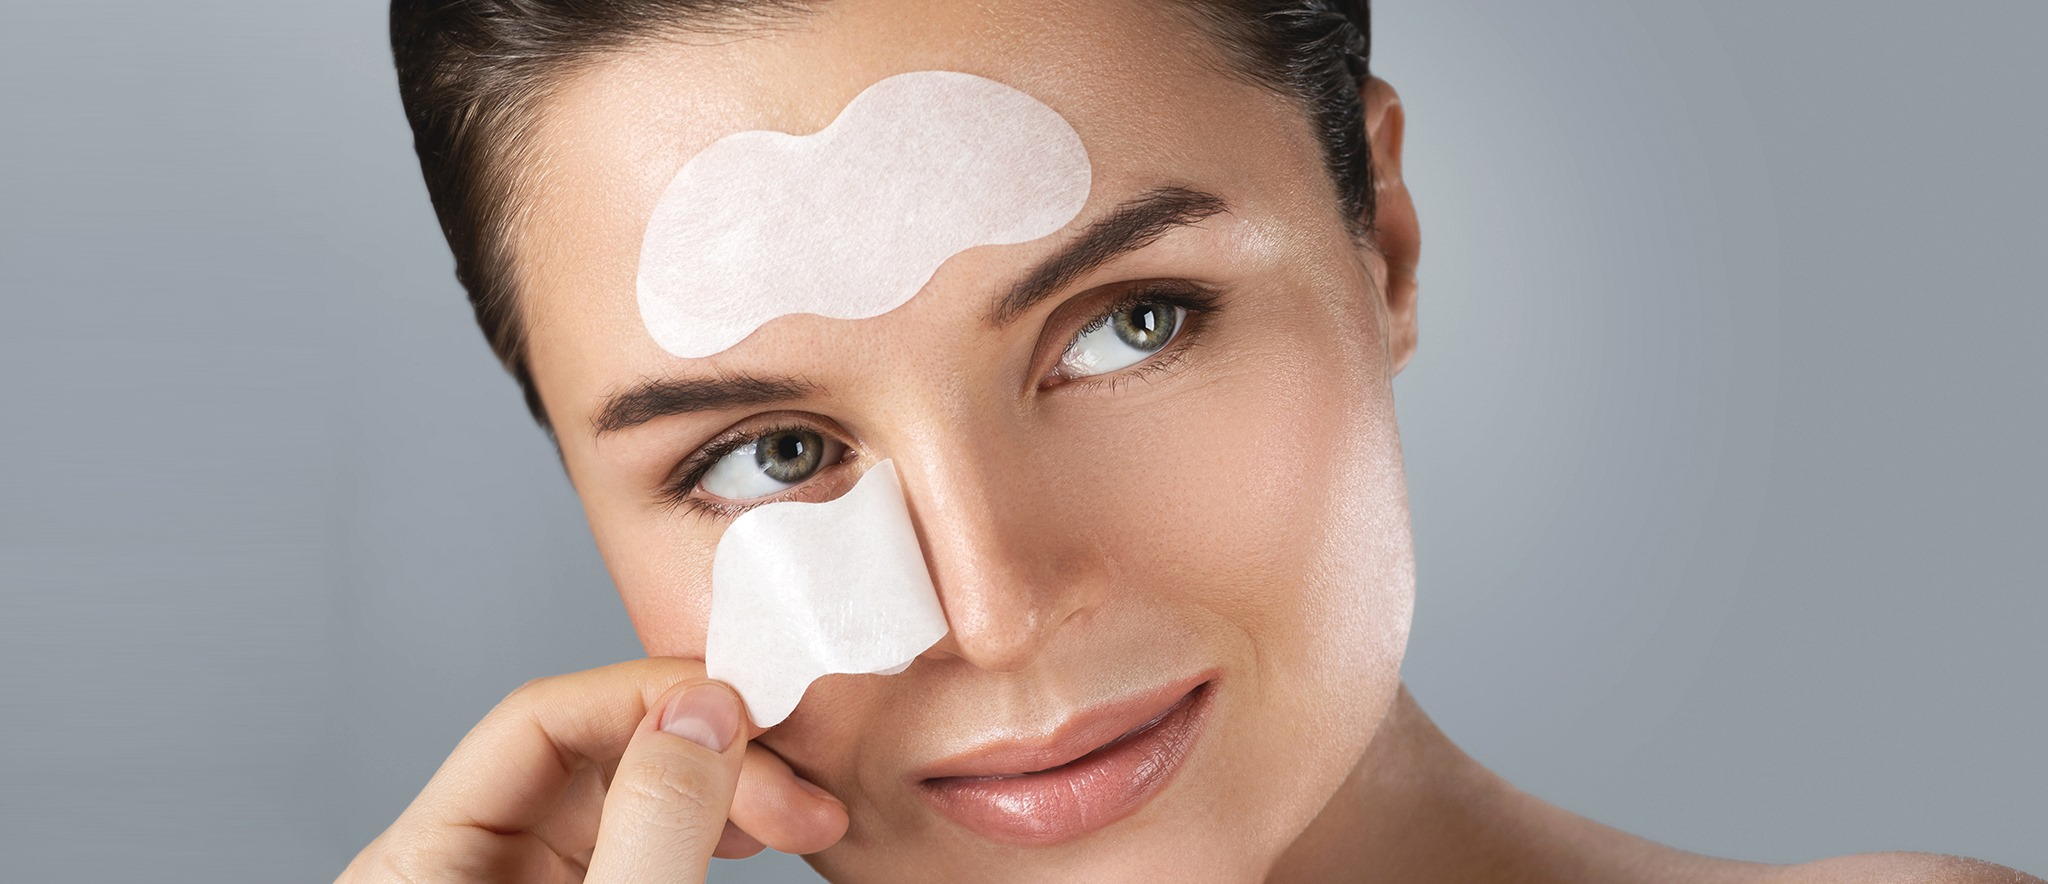 Are Pore Strips Bad For Your Skin We Investigate Advanced Dermatology Skin Cancer Associates